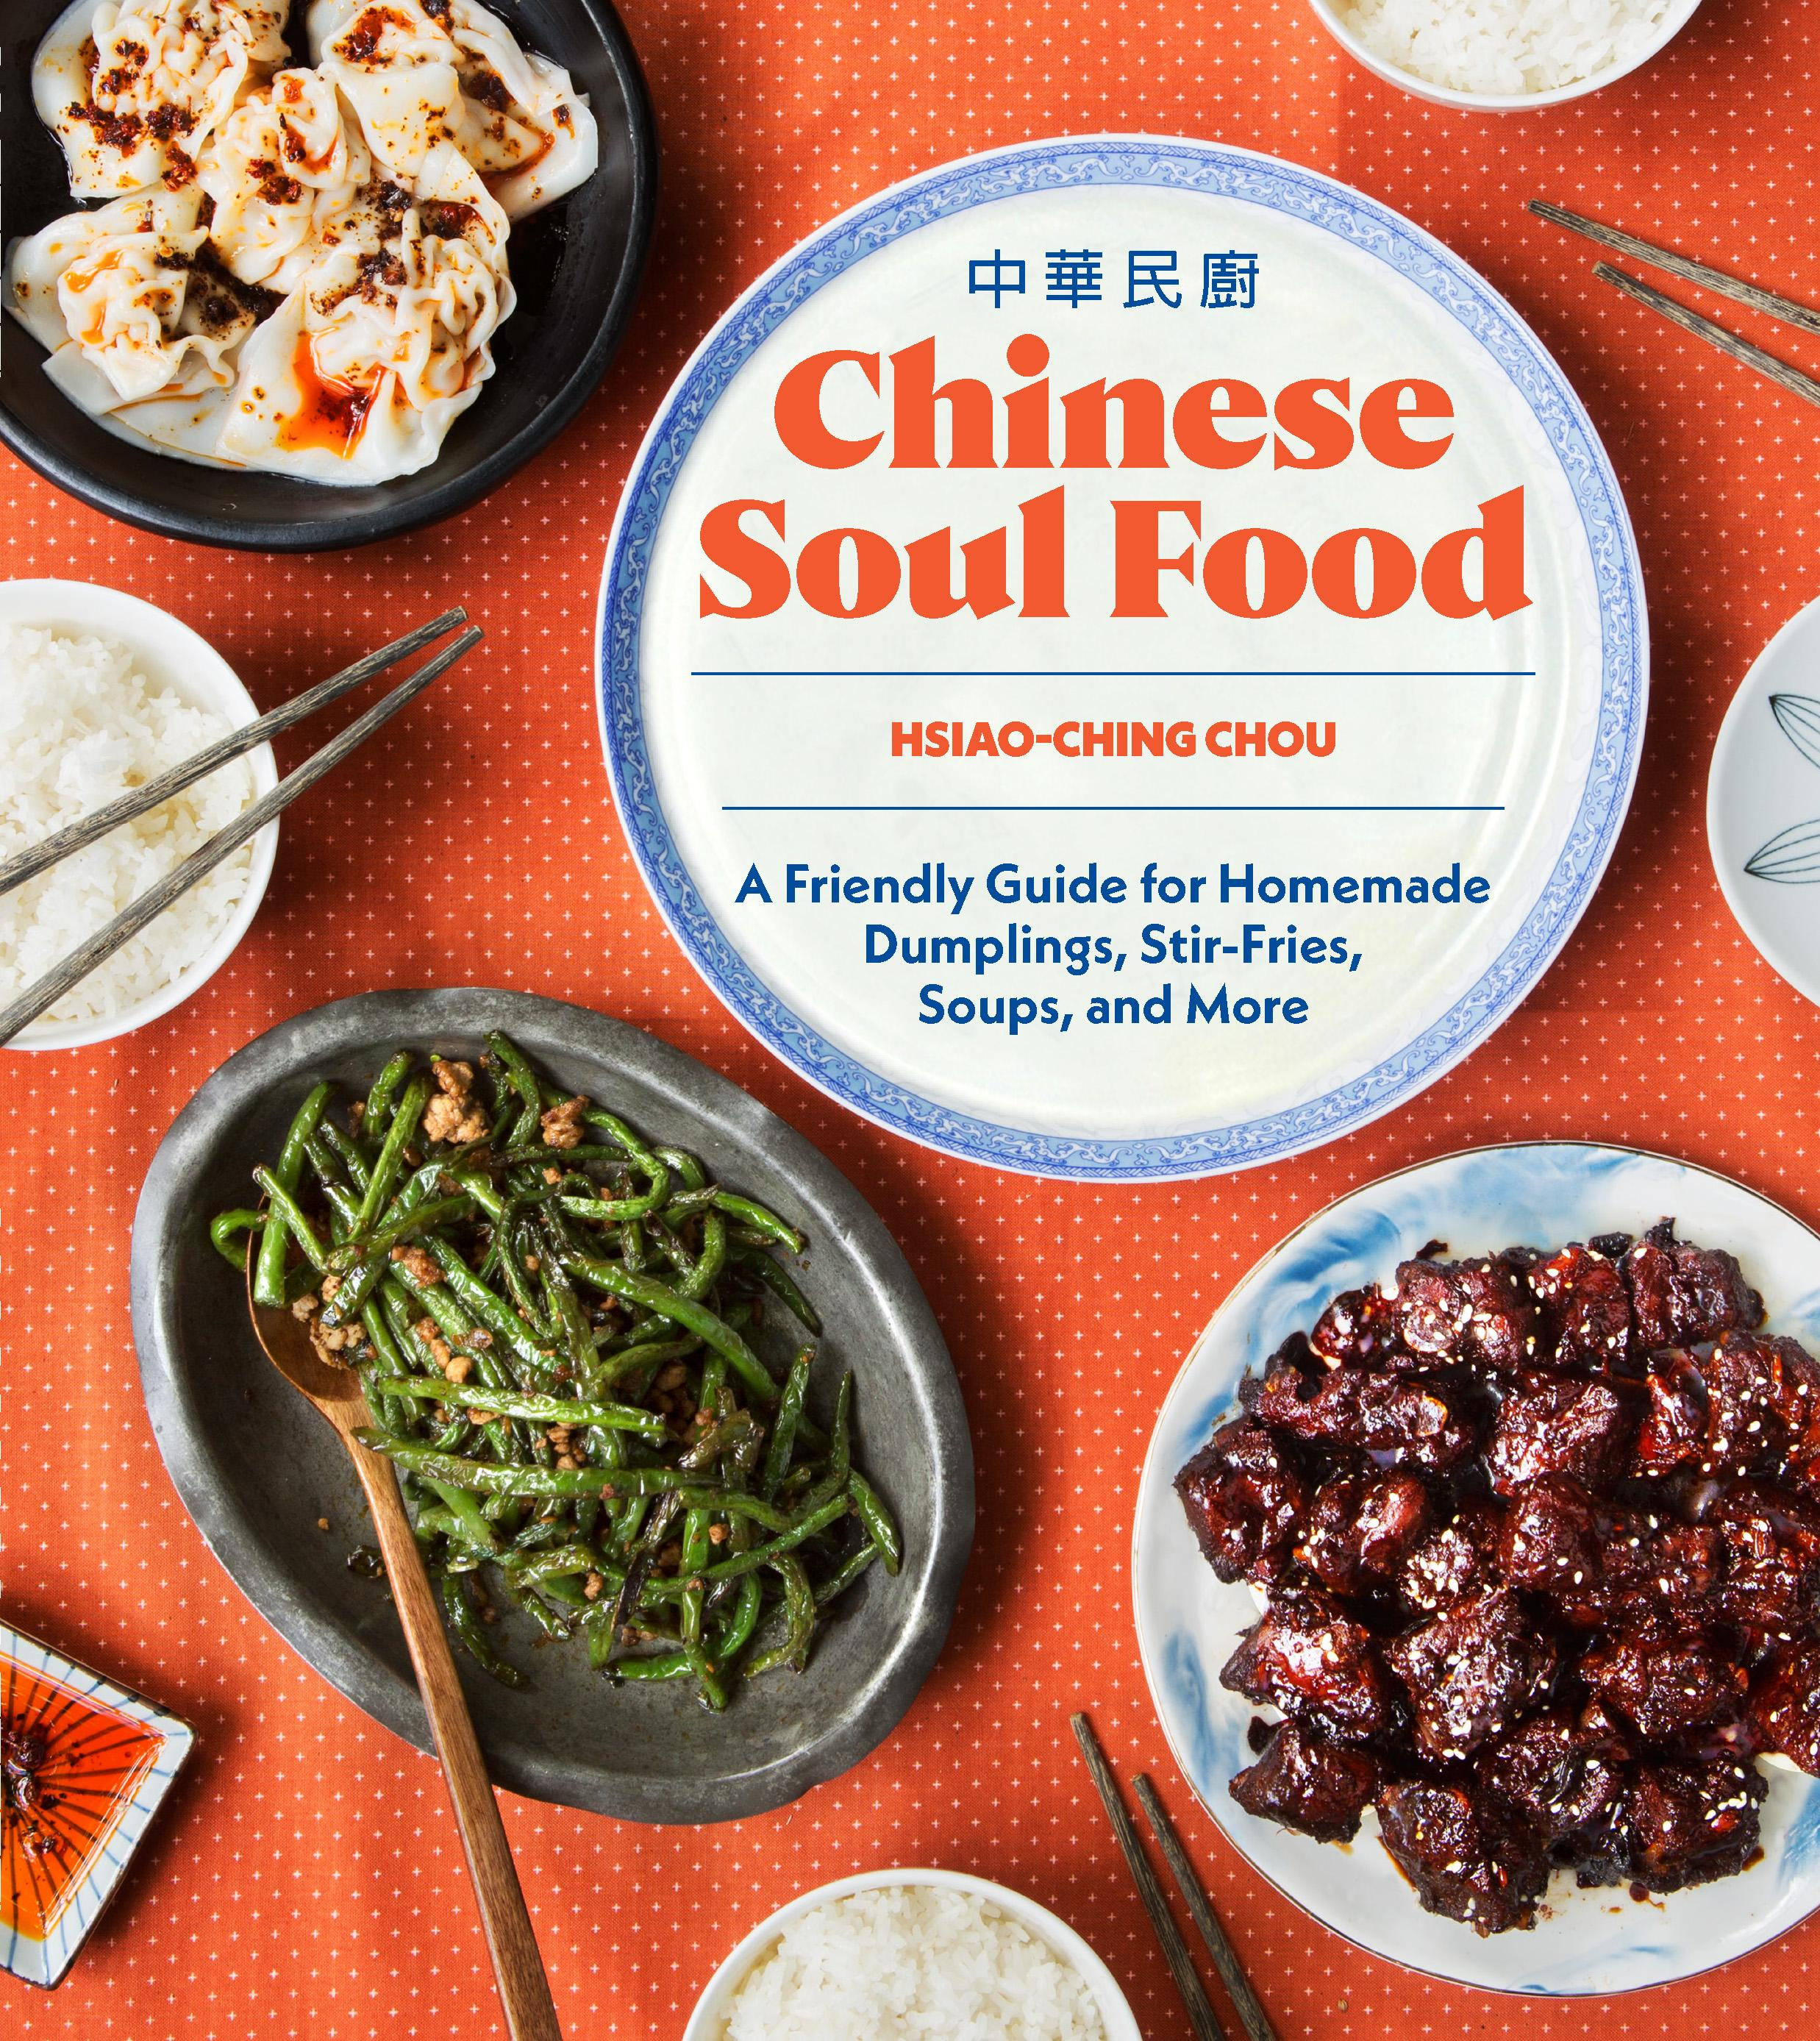 <p>Chinese Soul Food: A Friendly Guide for Homemade Dumplings, Stir-Fries, Soups, and More by Hsiao-Ching Chou. The former Seattle Post-Intelligencer food editor is out with Chinese Soul Food from Seattle's Sasquatch Books. The cookbook is all about classic comfort food and has 80 recipes for soon to be favorites you can easily make any night of the week. You'll find streamlines recipes for sizzling potstickers, stir-fries that are unbelievably easy to make, saucy braises, and soups that bring comfort with a sip.{&amp;nbsp;} (Image: Sasquatch Books){&amp;nbsp;}<br></p>